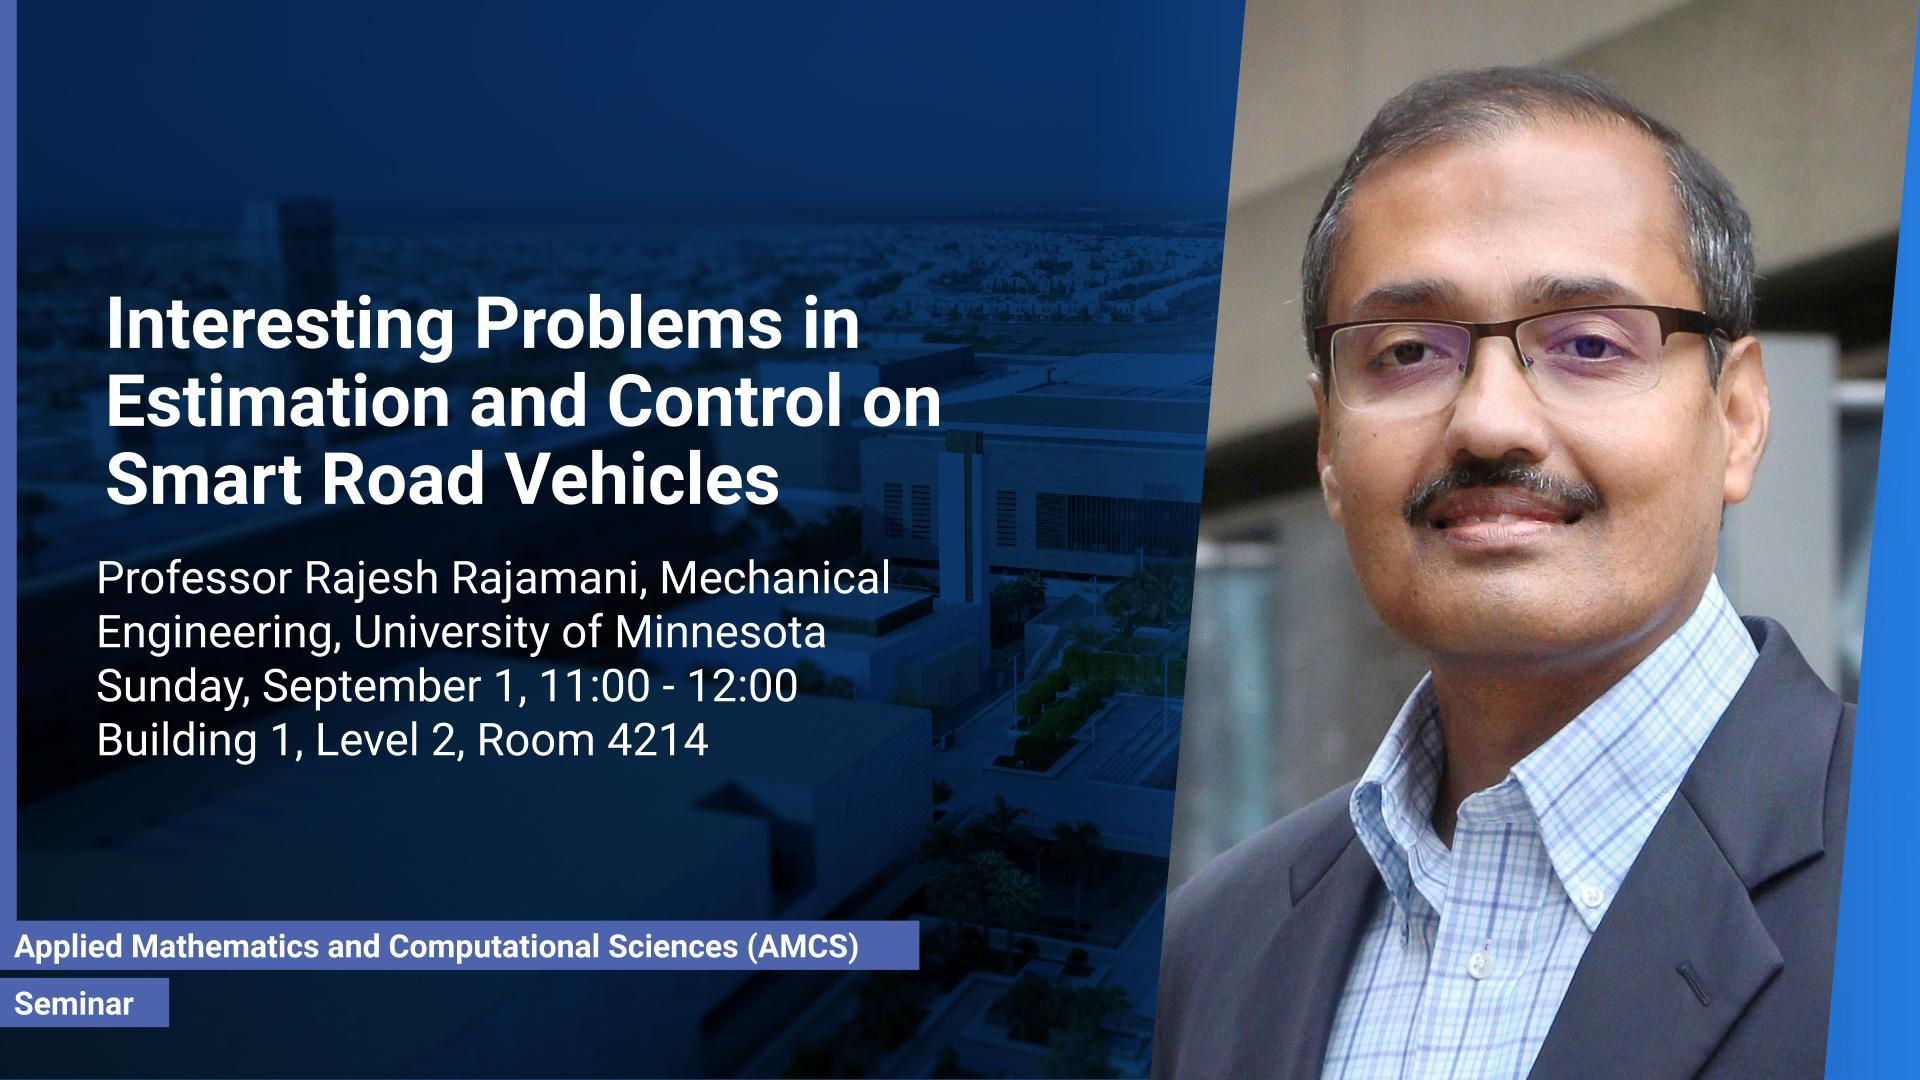 KAUST CEMSE AMCS Seminar Professor Rajesh Rajamani interesting problems in estimation and control on smart road vehicles